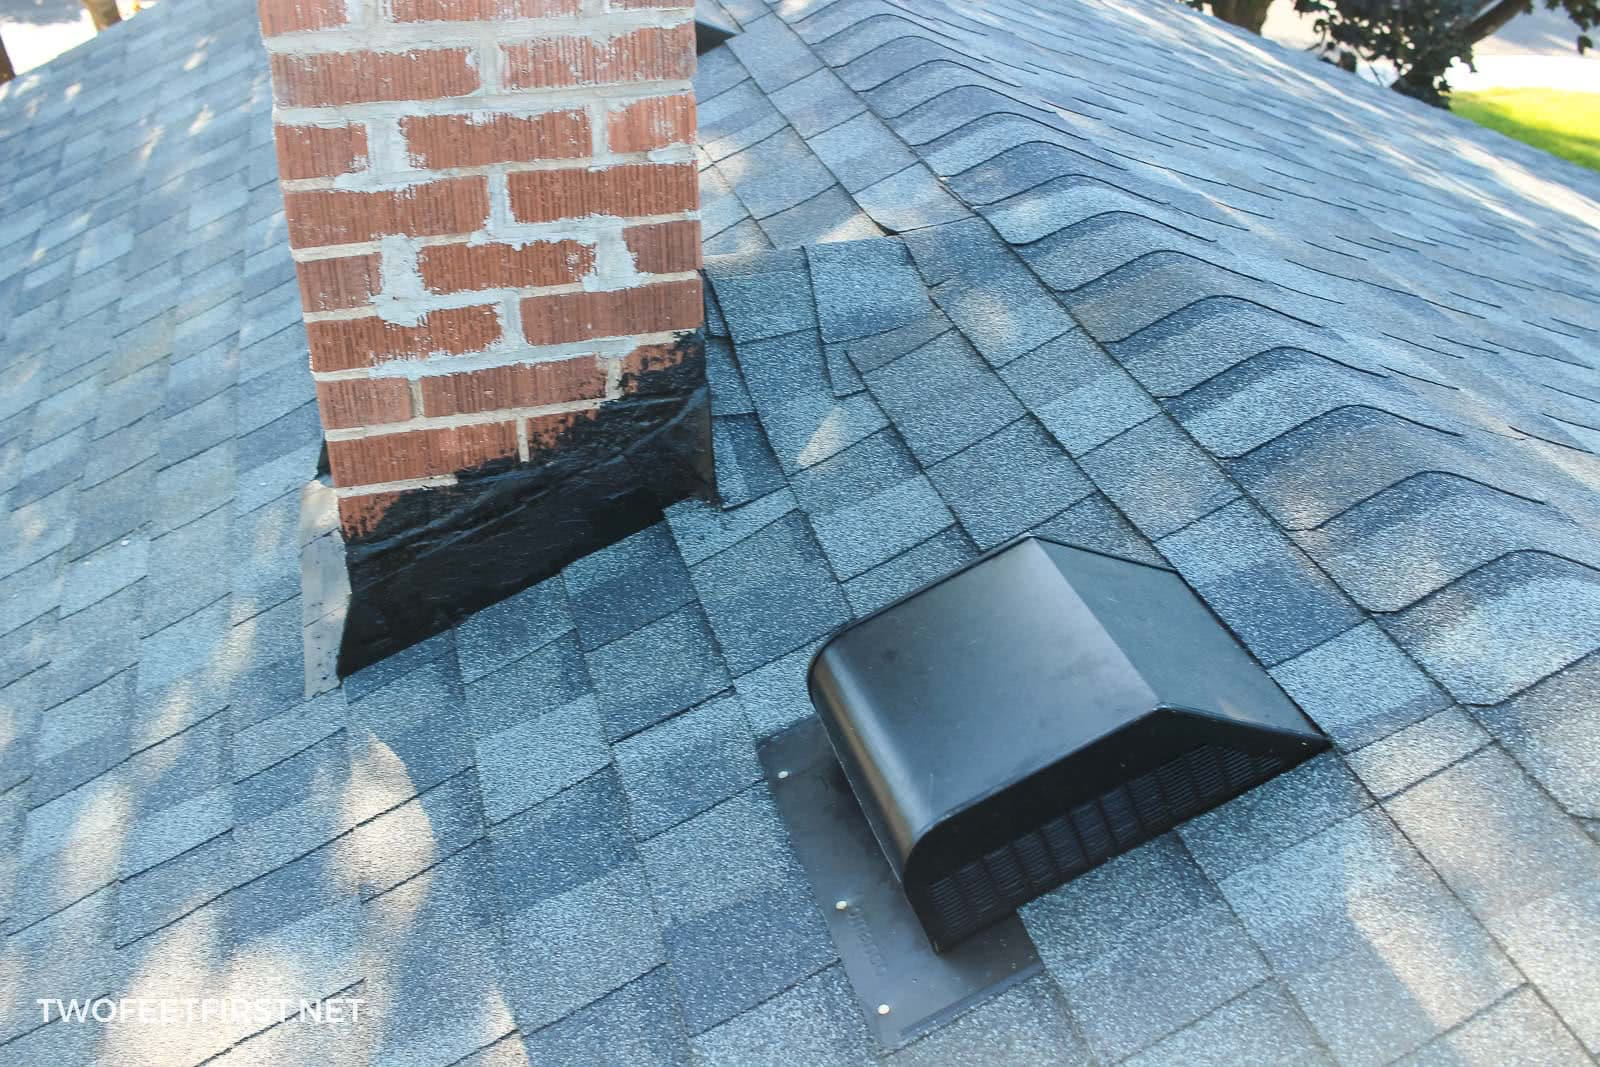 install new vents on roof